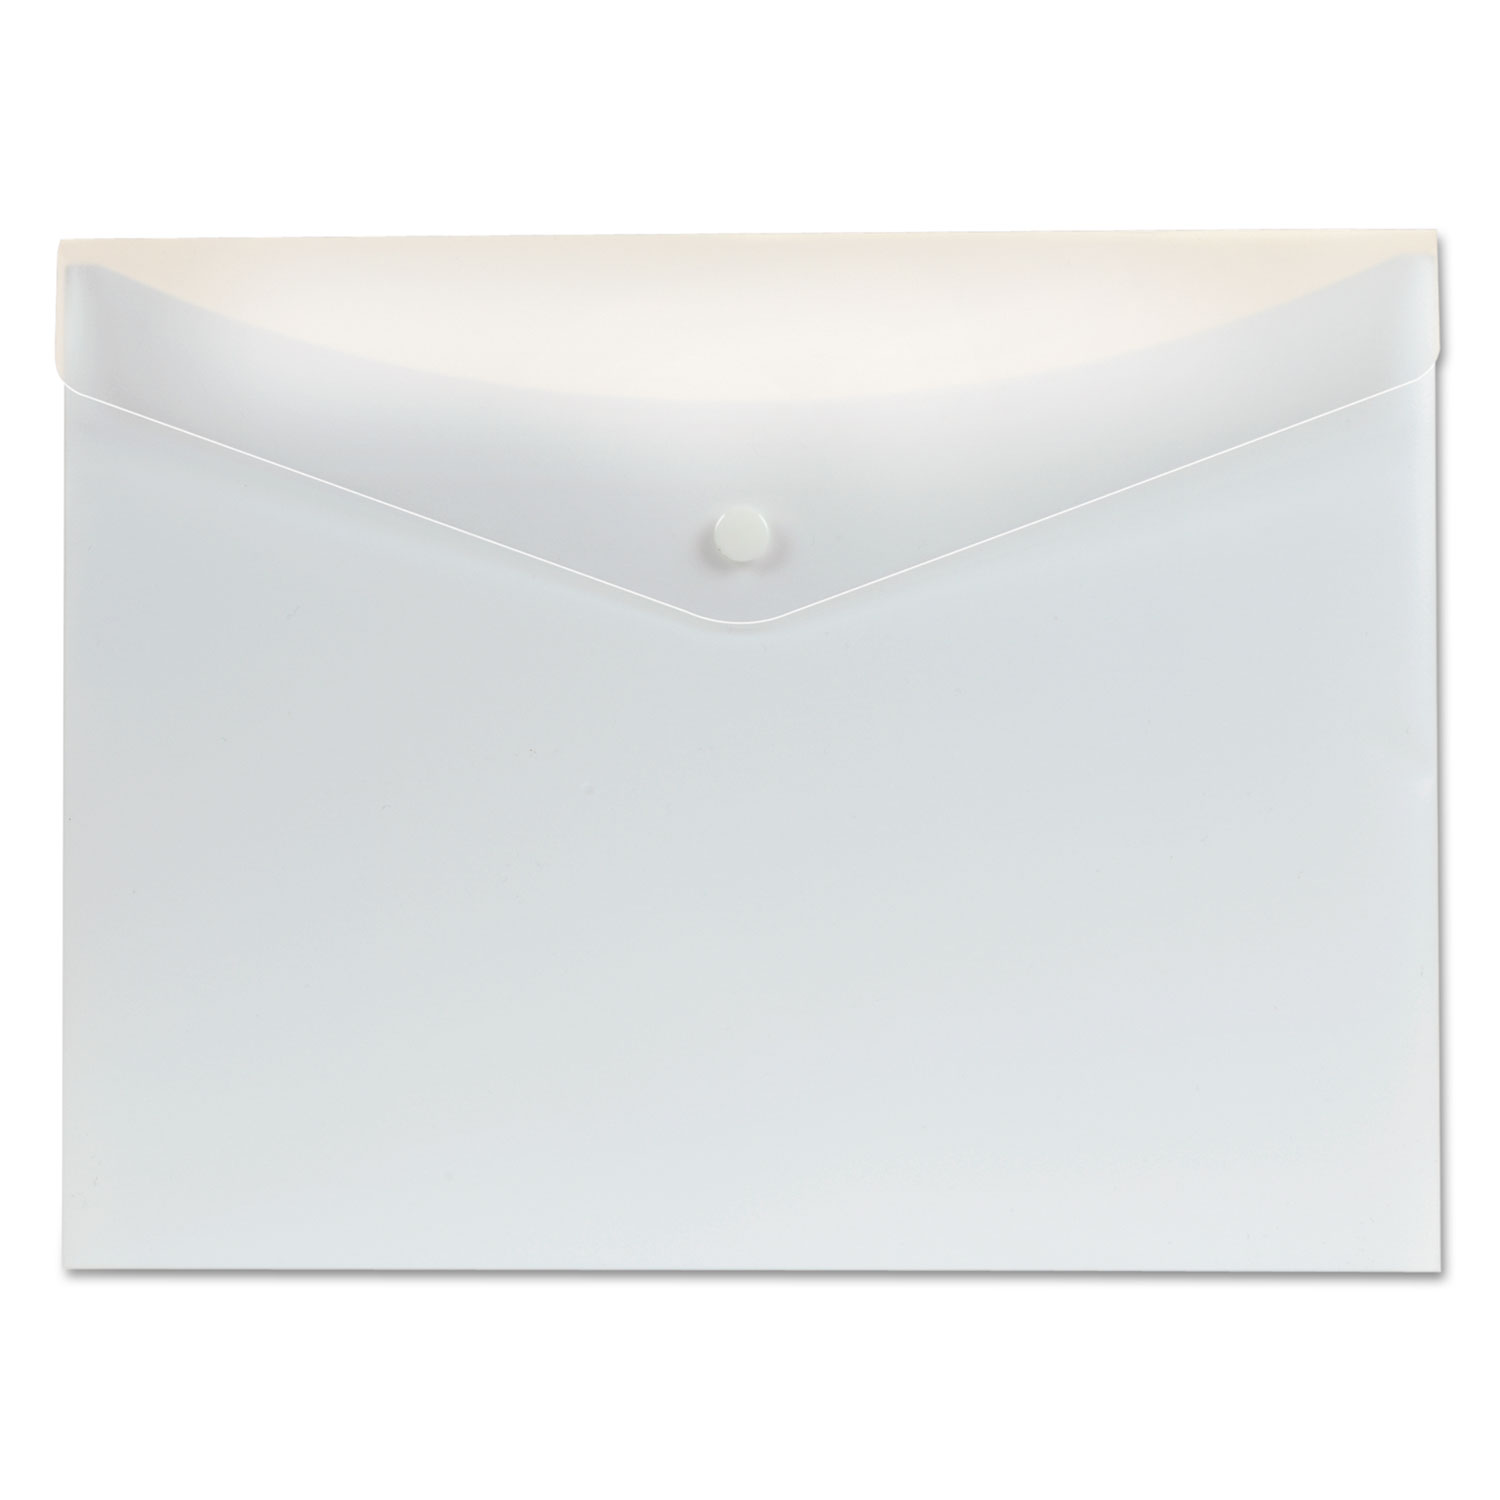 Poly Snap Envelope, Snap Closure, 8.5 x 11, White